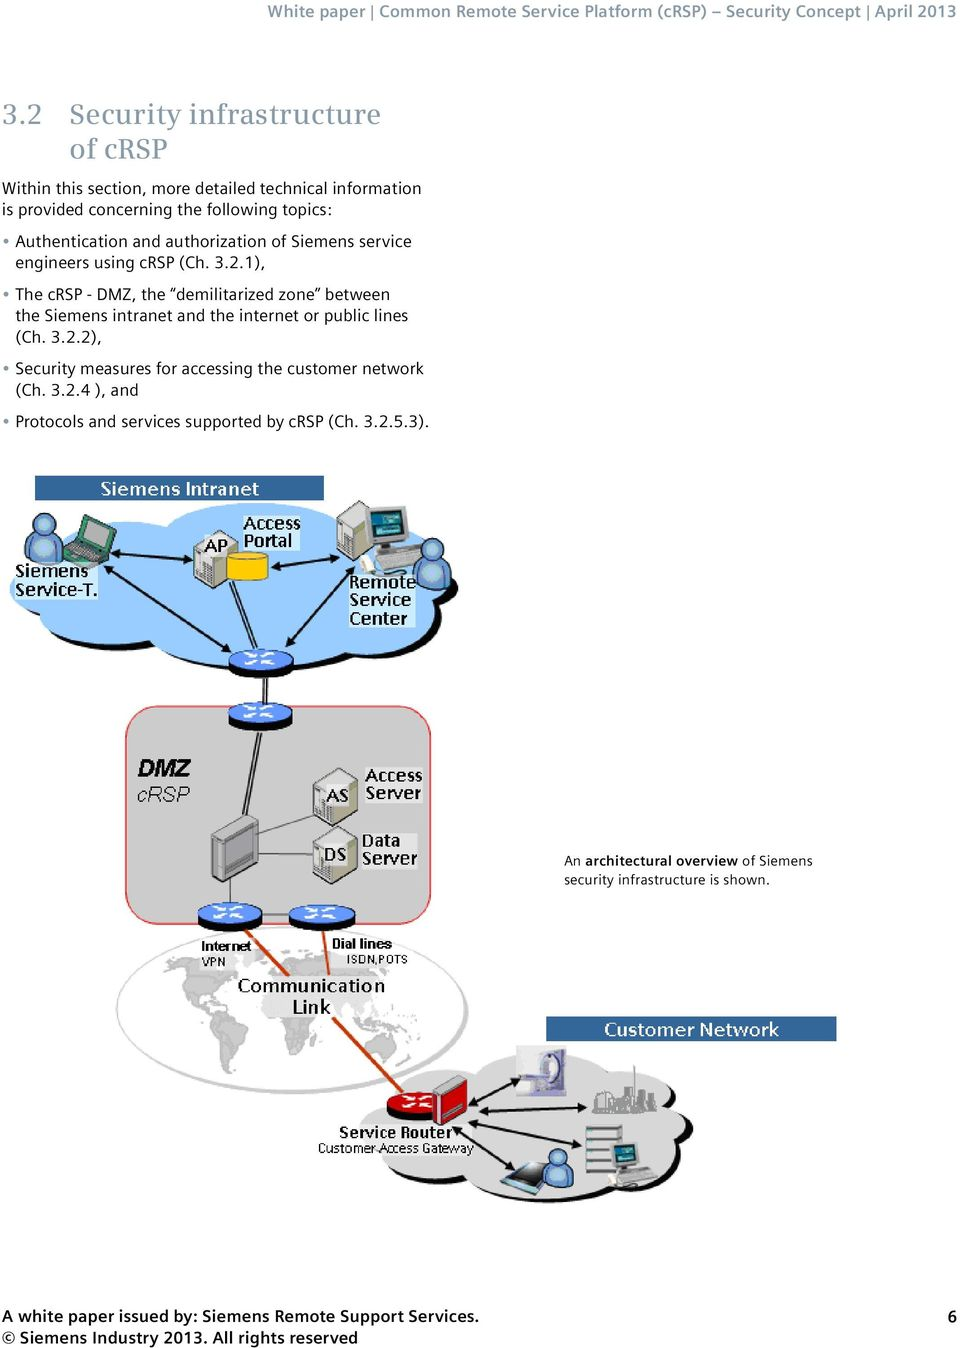 1), The crsp - DMZ, the demilitarized zone between the Siemens intranet and the internet or public lines (Ch. 3.2.